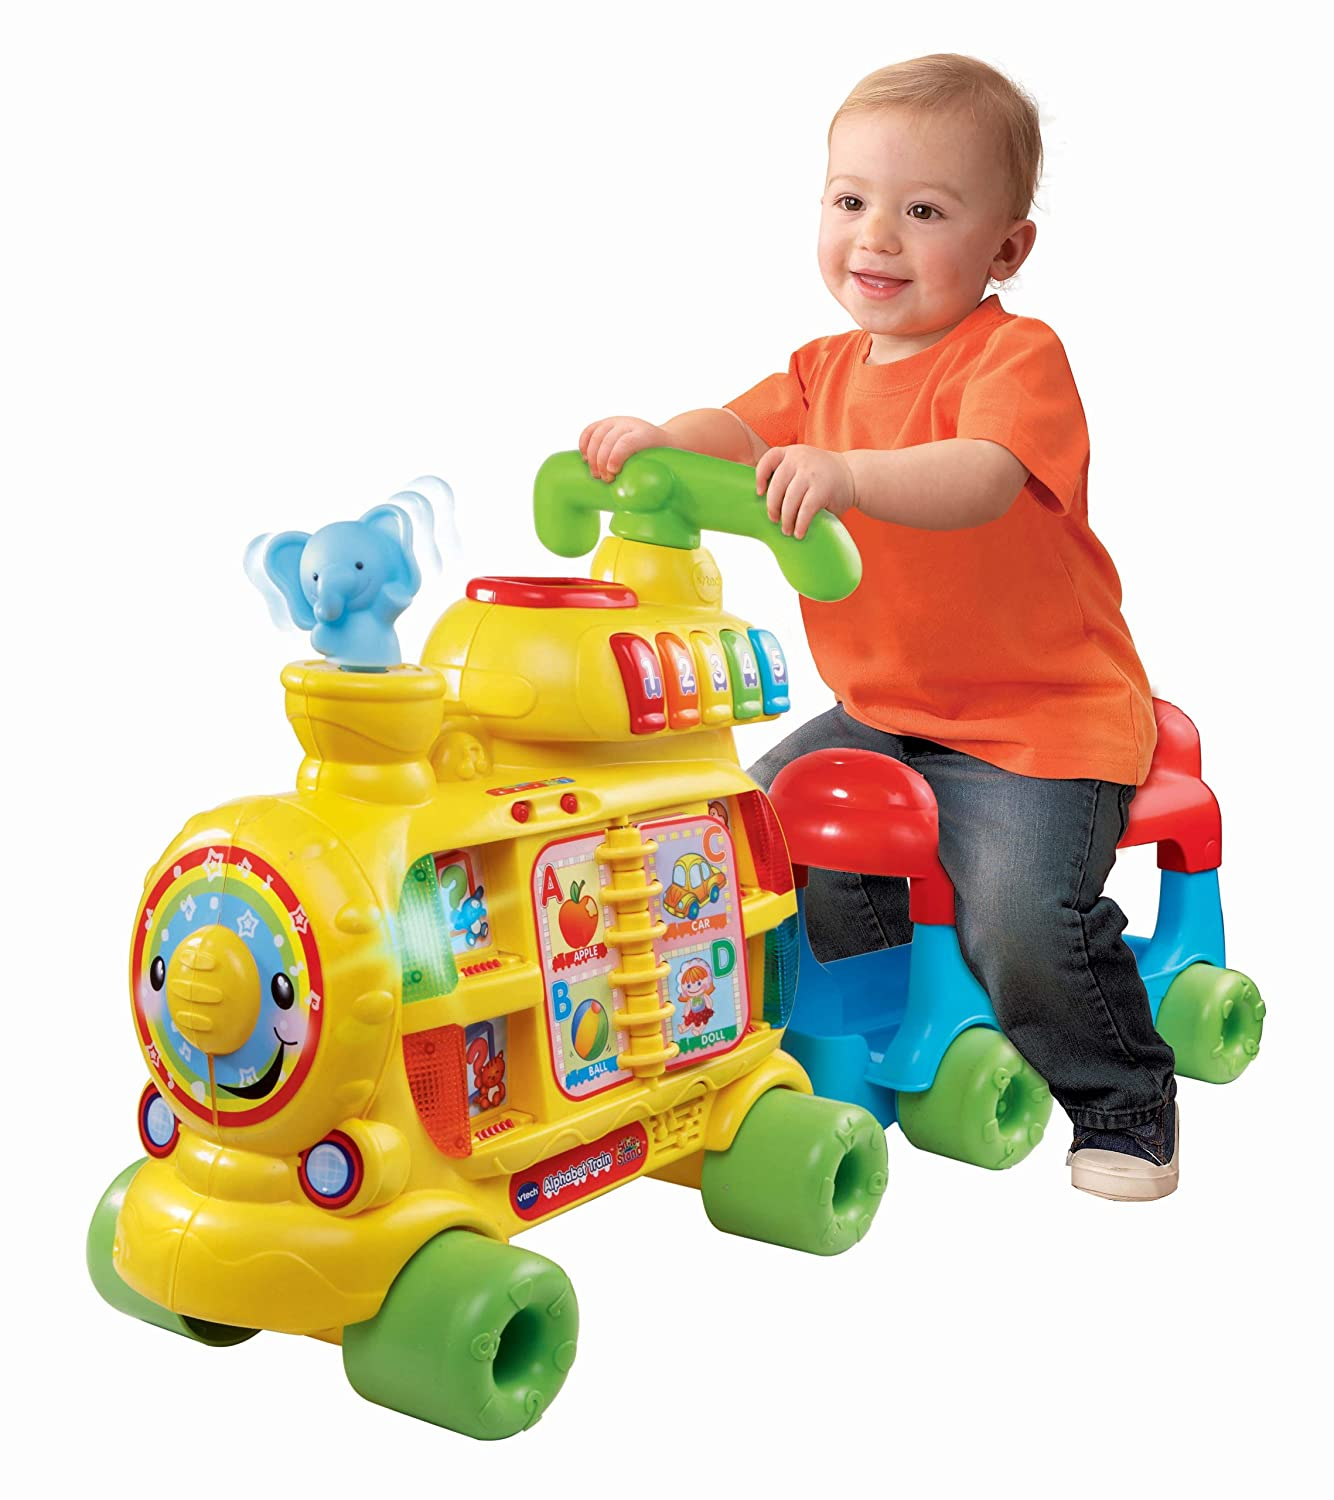 Walker Ride Train Alphabet VTech Sit to Stand New Learn Toy for